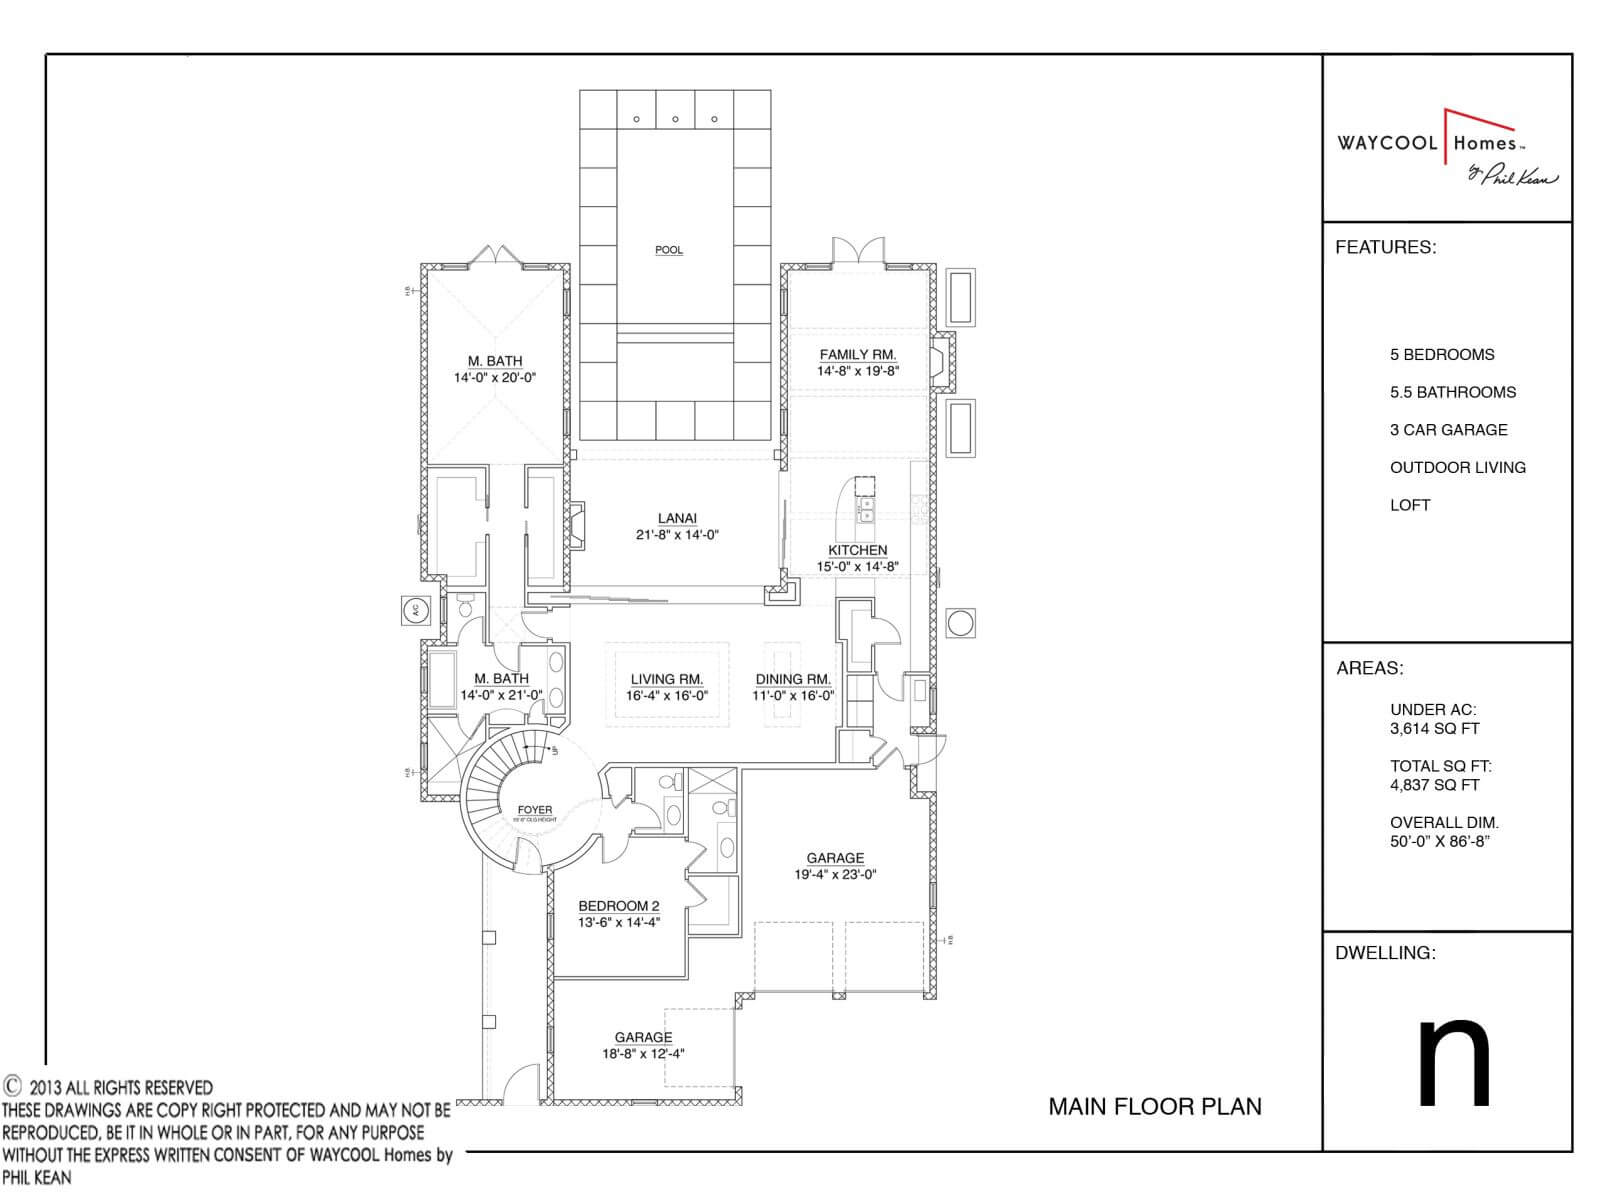 Floor Plans,WAYCOOL HOMES BY PHIL KEAN,1175